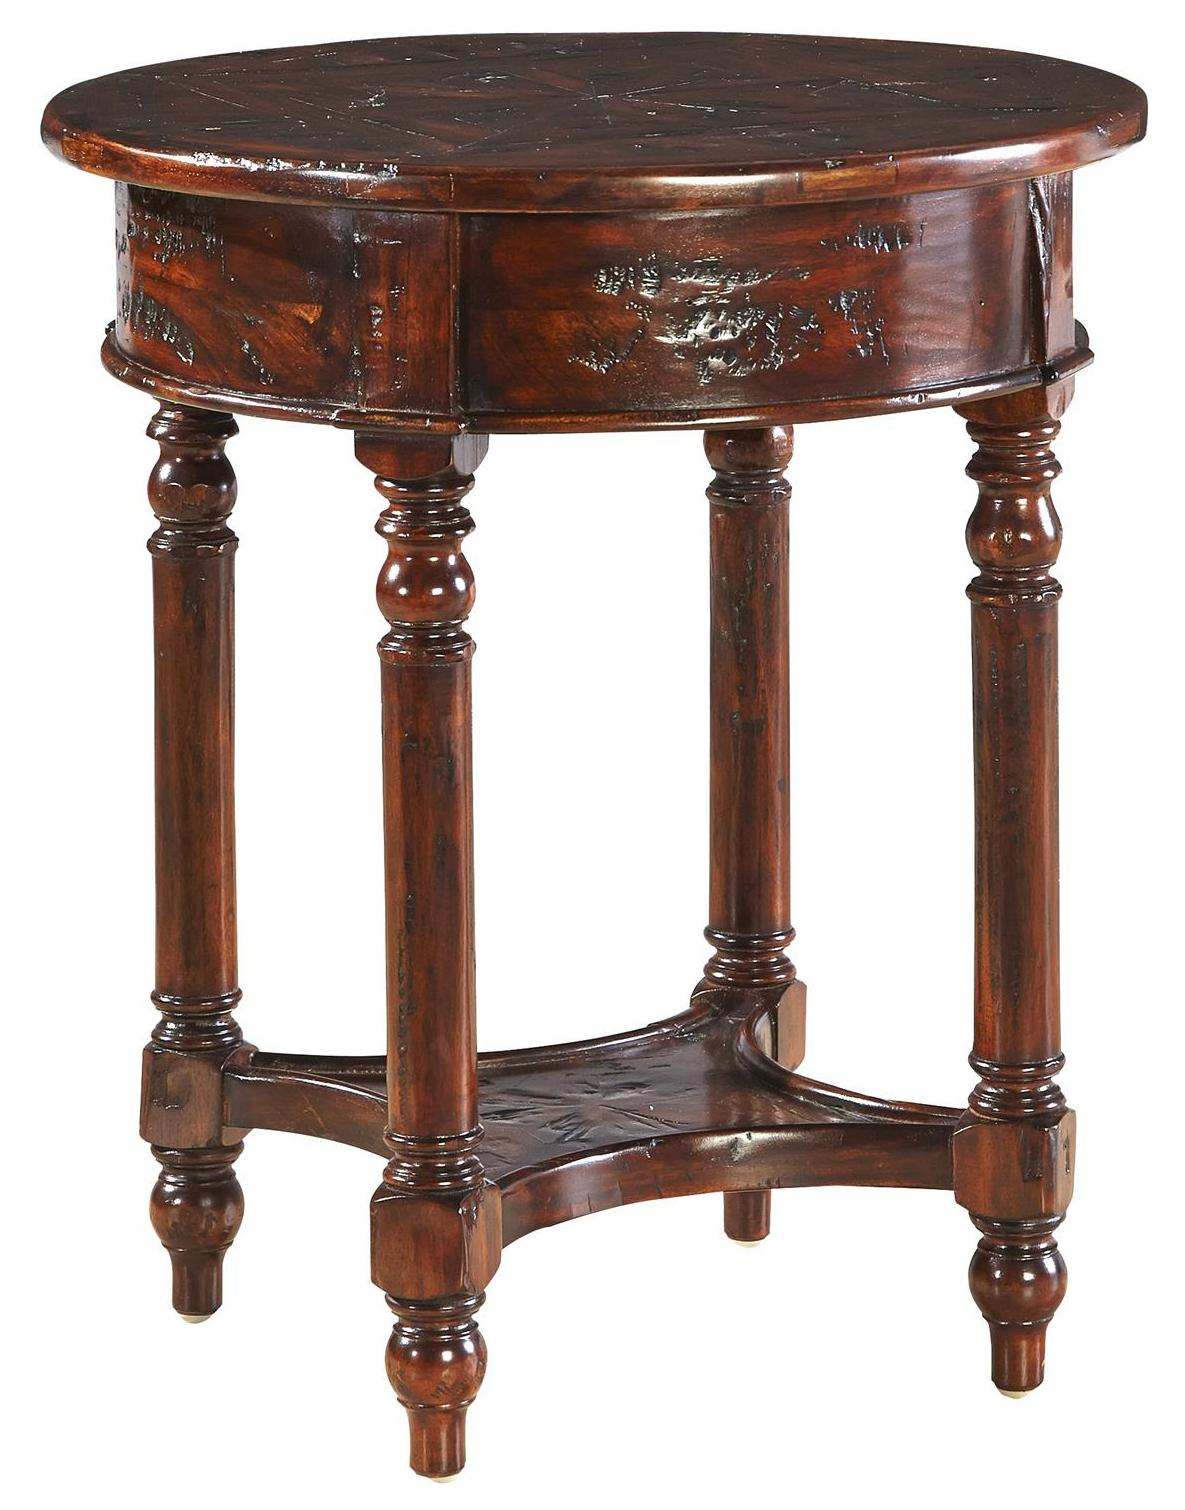 Accents Old Fashioned Martini Table by Furniture Classics at Alison Craig Home Furnishings